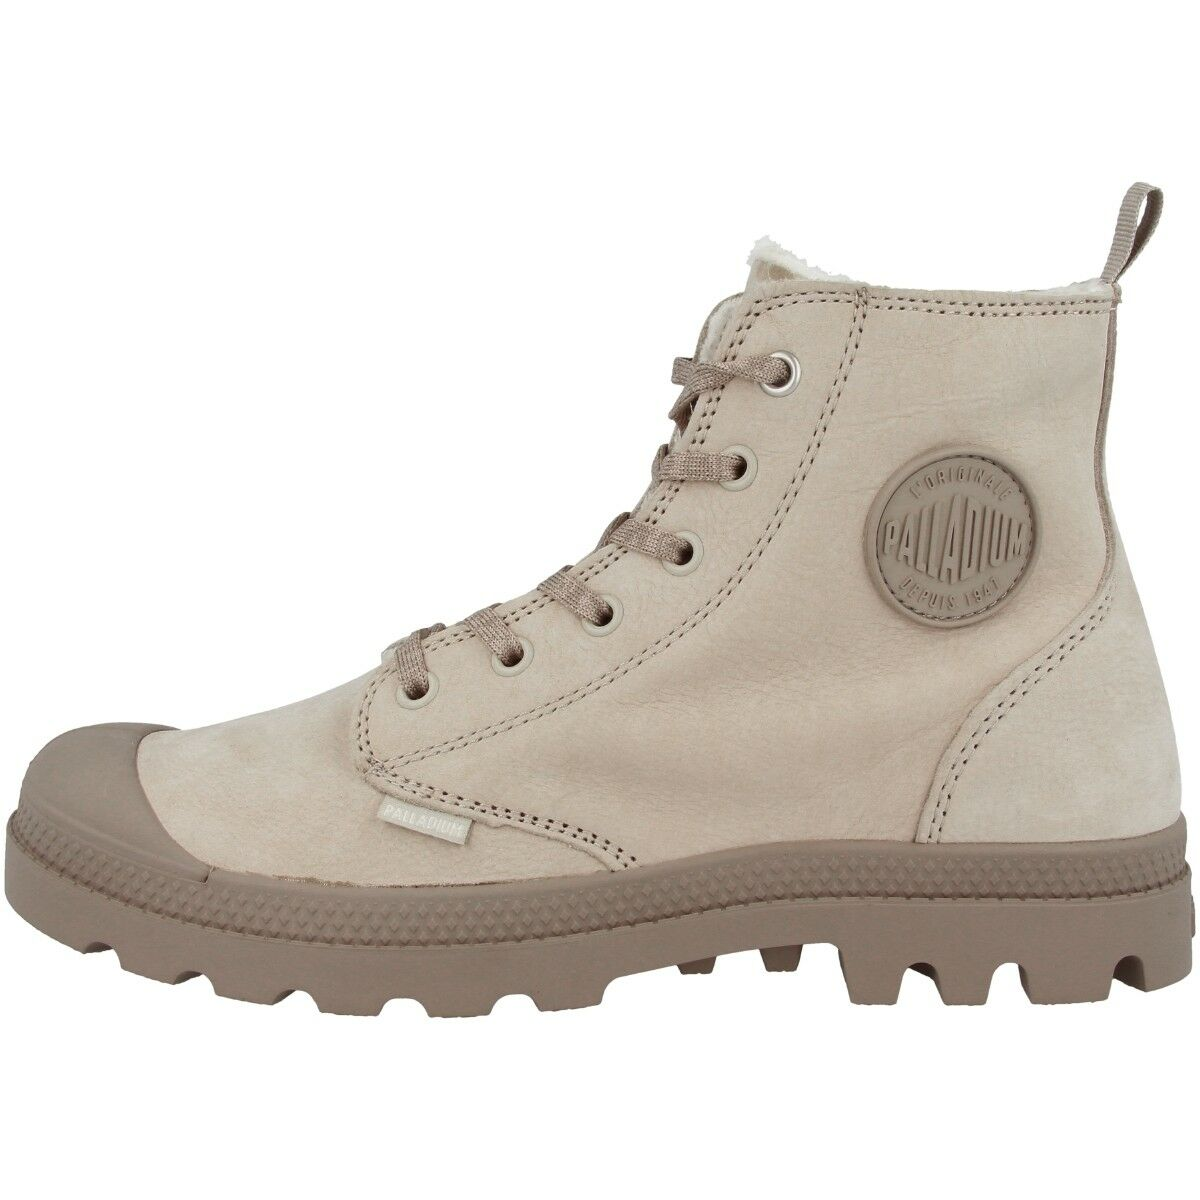 Palladium Pampa Hi Zip Wl Leather Boots Trainers Padded 95982-071